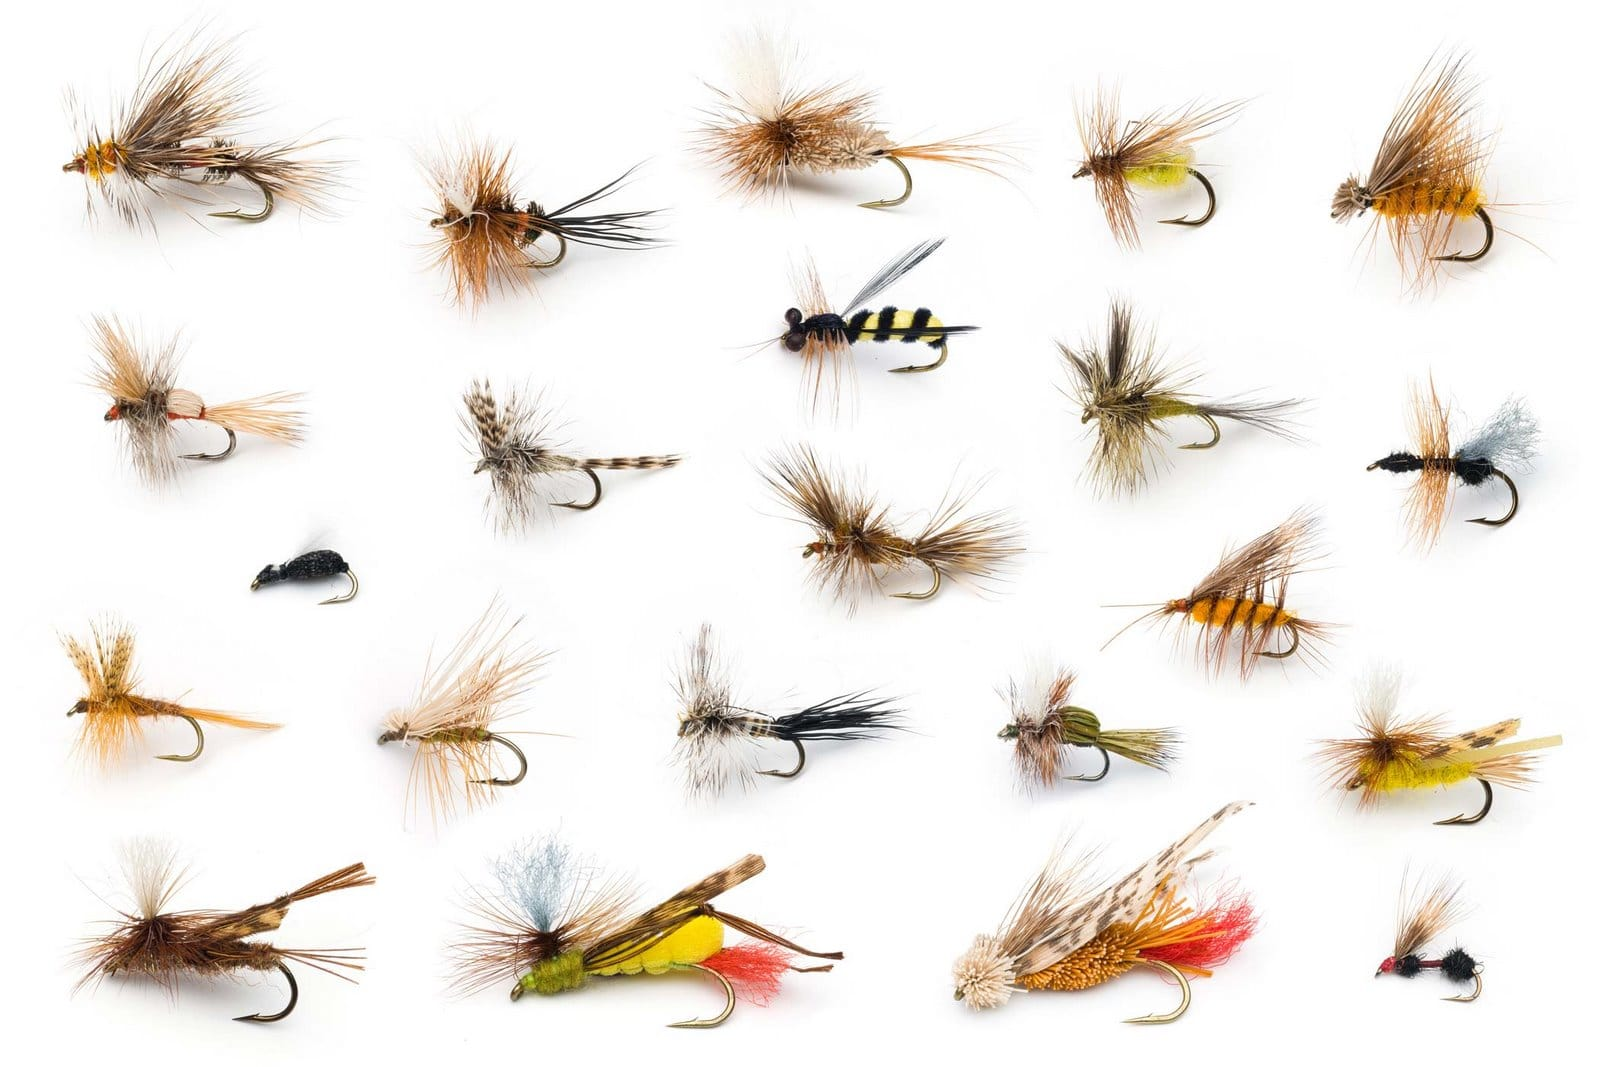 Fly fishing fly drawings - photo#51